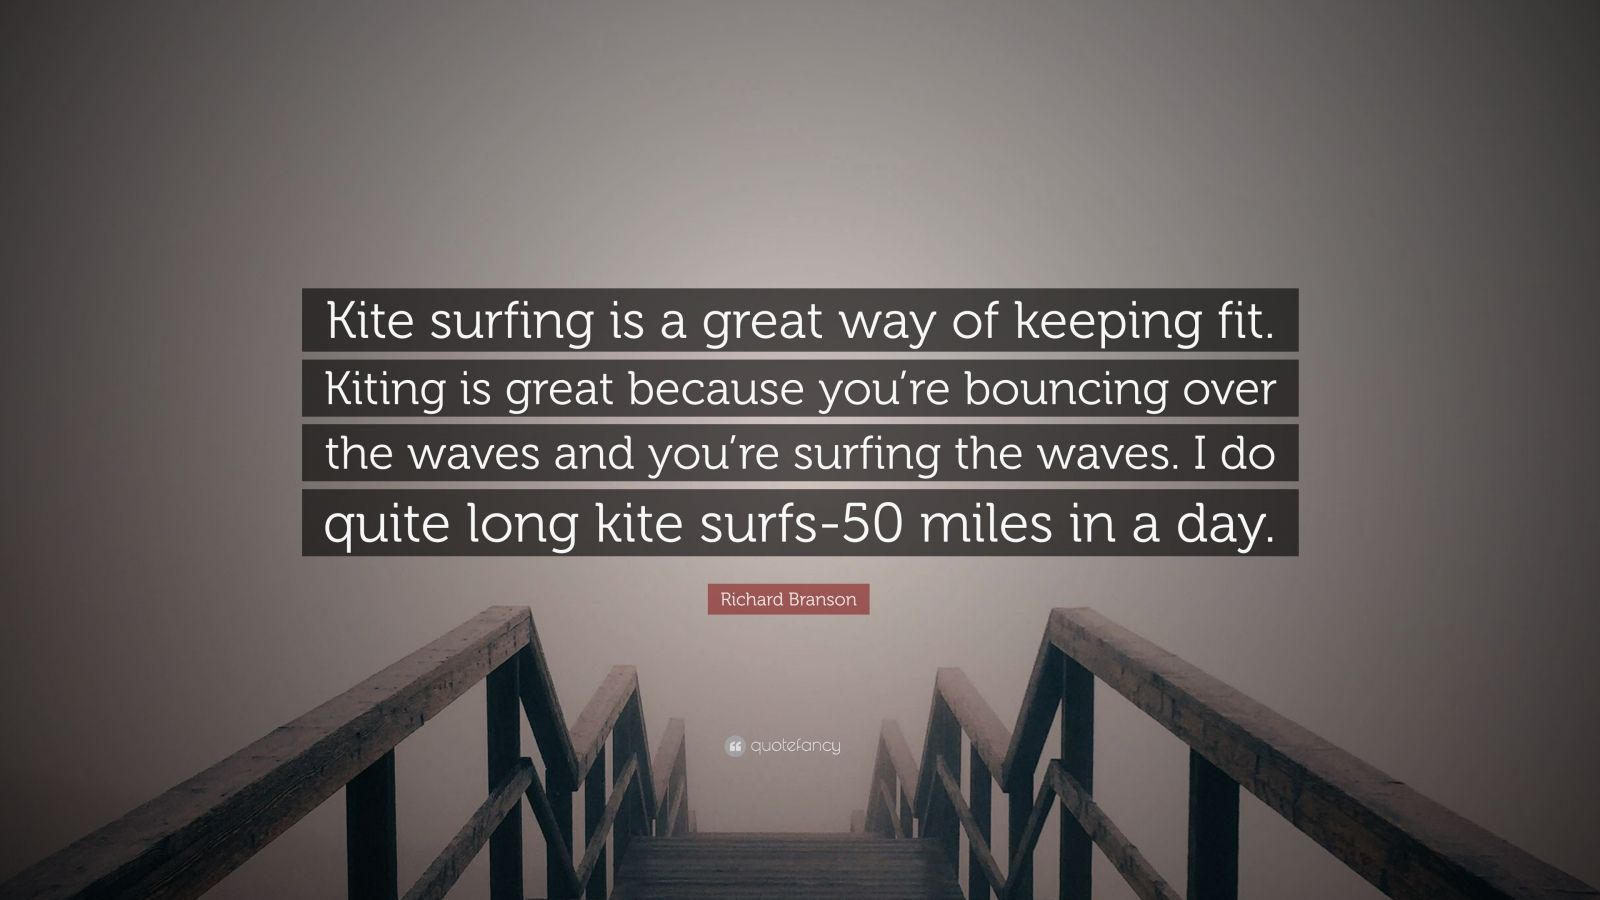 """Richard Branson Quote: """"Kite surfing is a great way of keeping fit. Kiting is great because you're bouncing over the waves and you're surfing the waves. I do quite long kite surfs-50 miles in a day."""""""